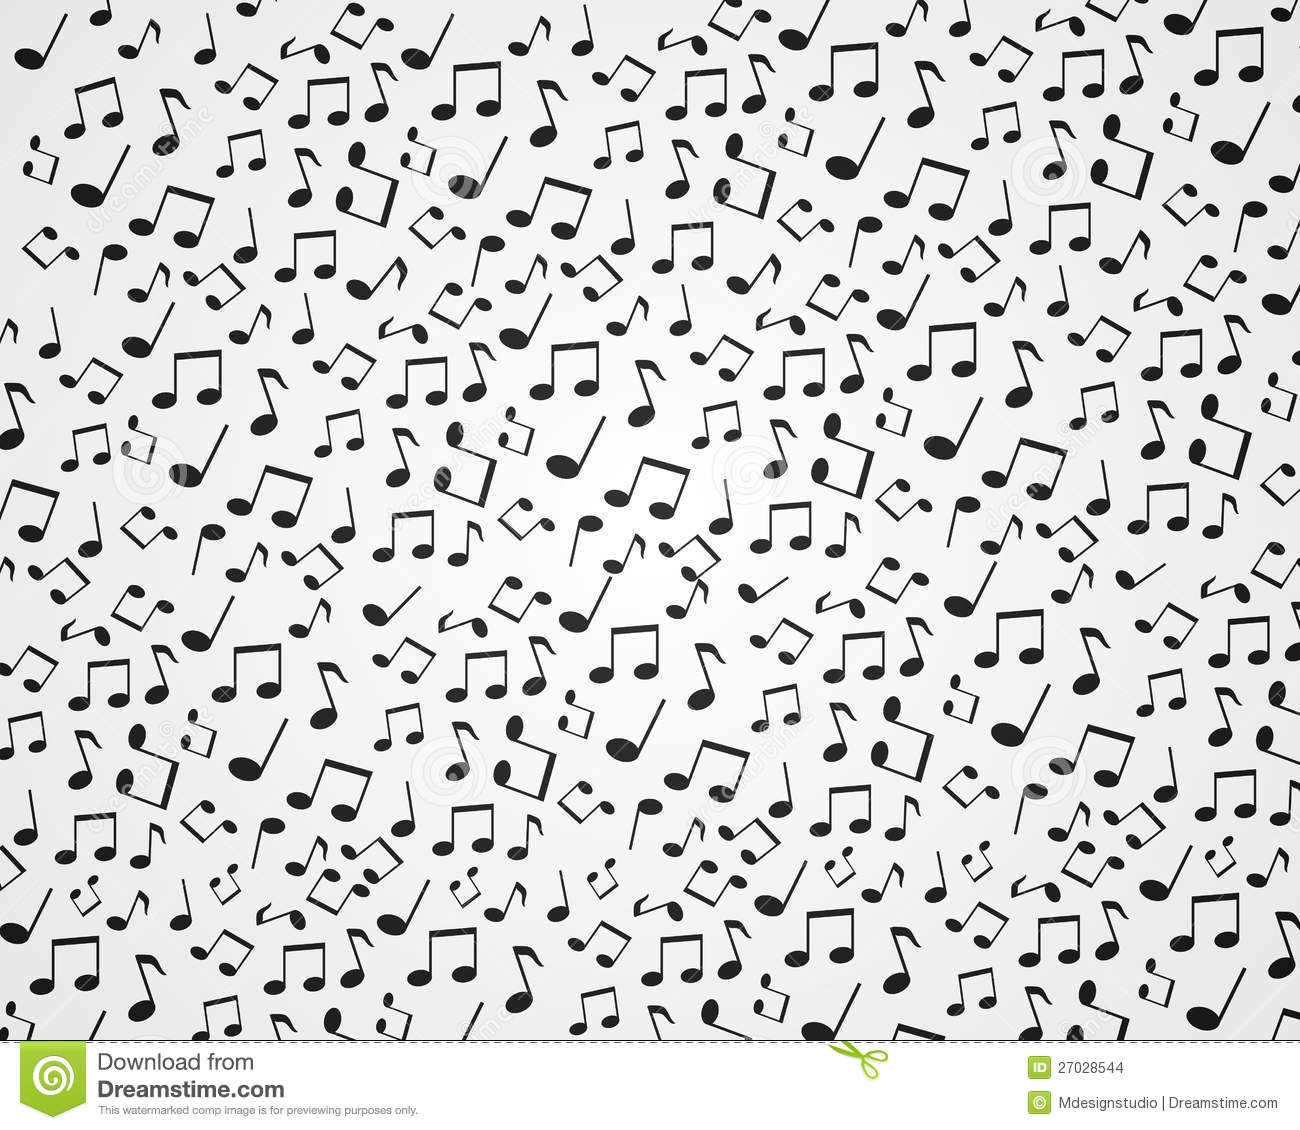 Music note wallpaper. music note background wallpaper.